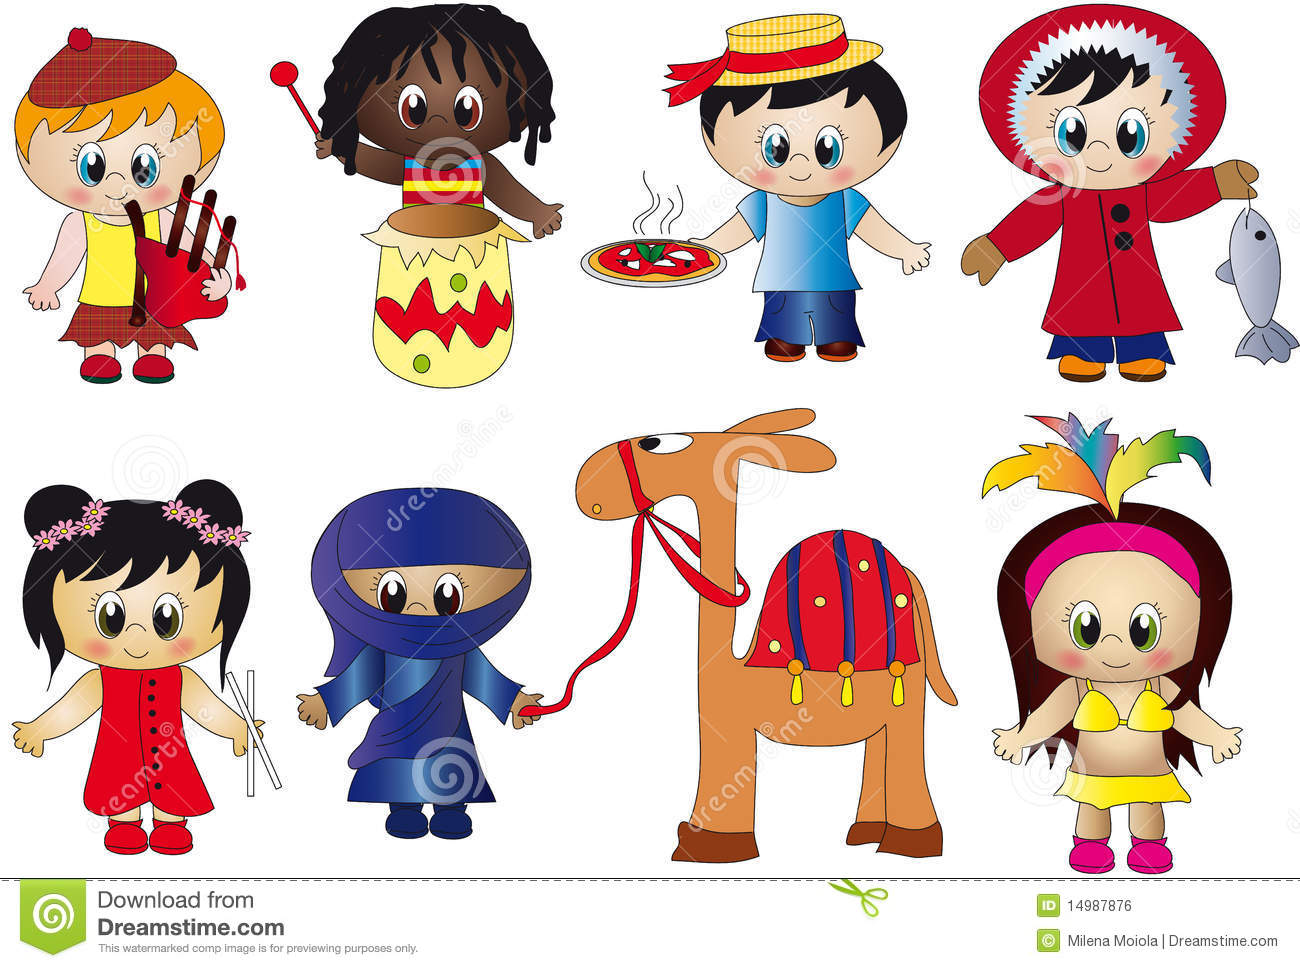 Niños De Diferentes Nacionalidades: Children Stock Illustration. Image Of Italy, Eskimo